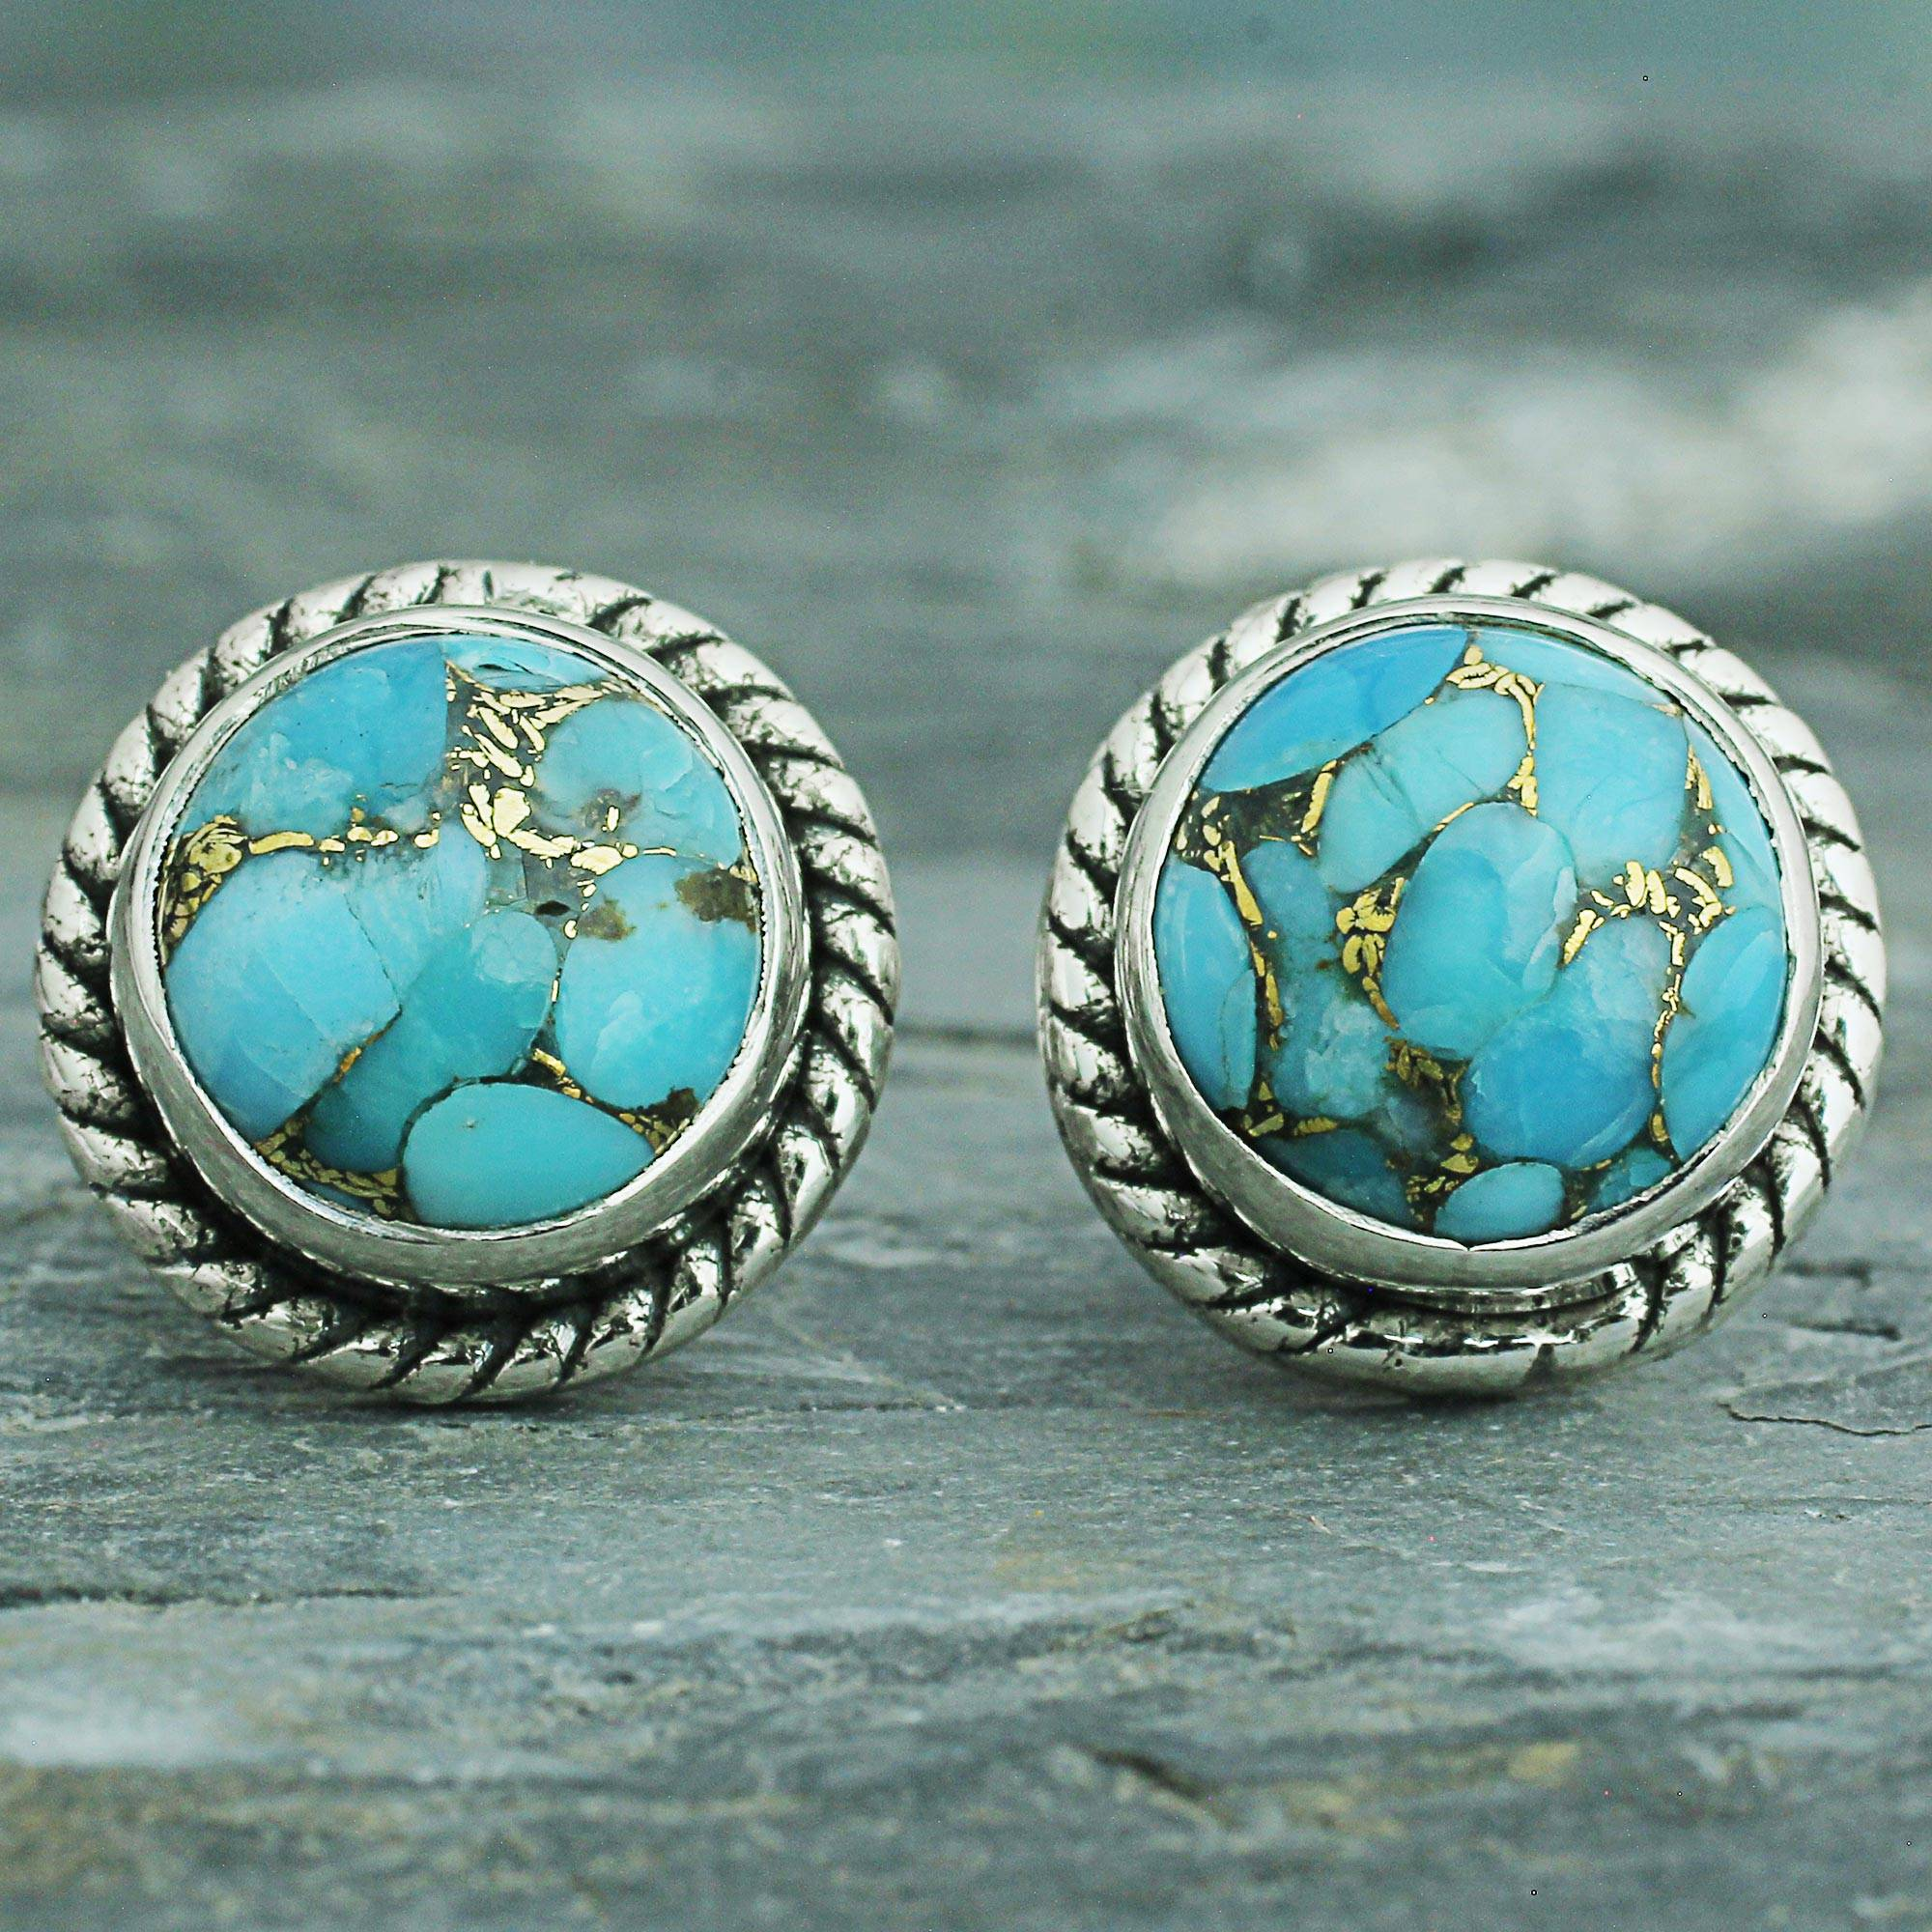 metallic in silver lyst silvertone jewelry product round normal stud fossil turquoise earrings tone gallery